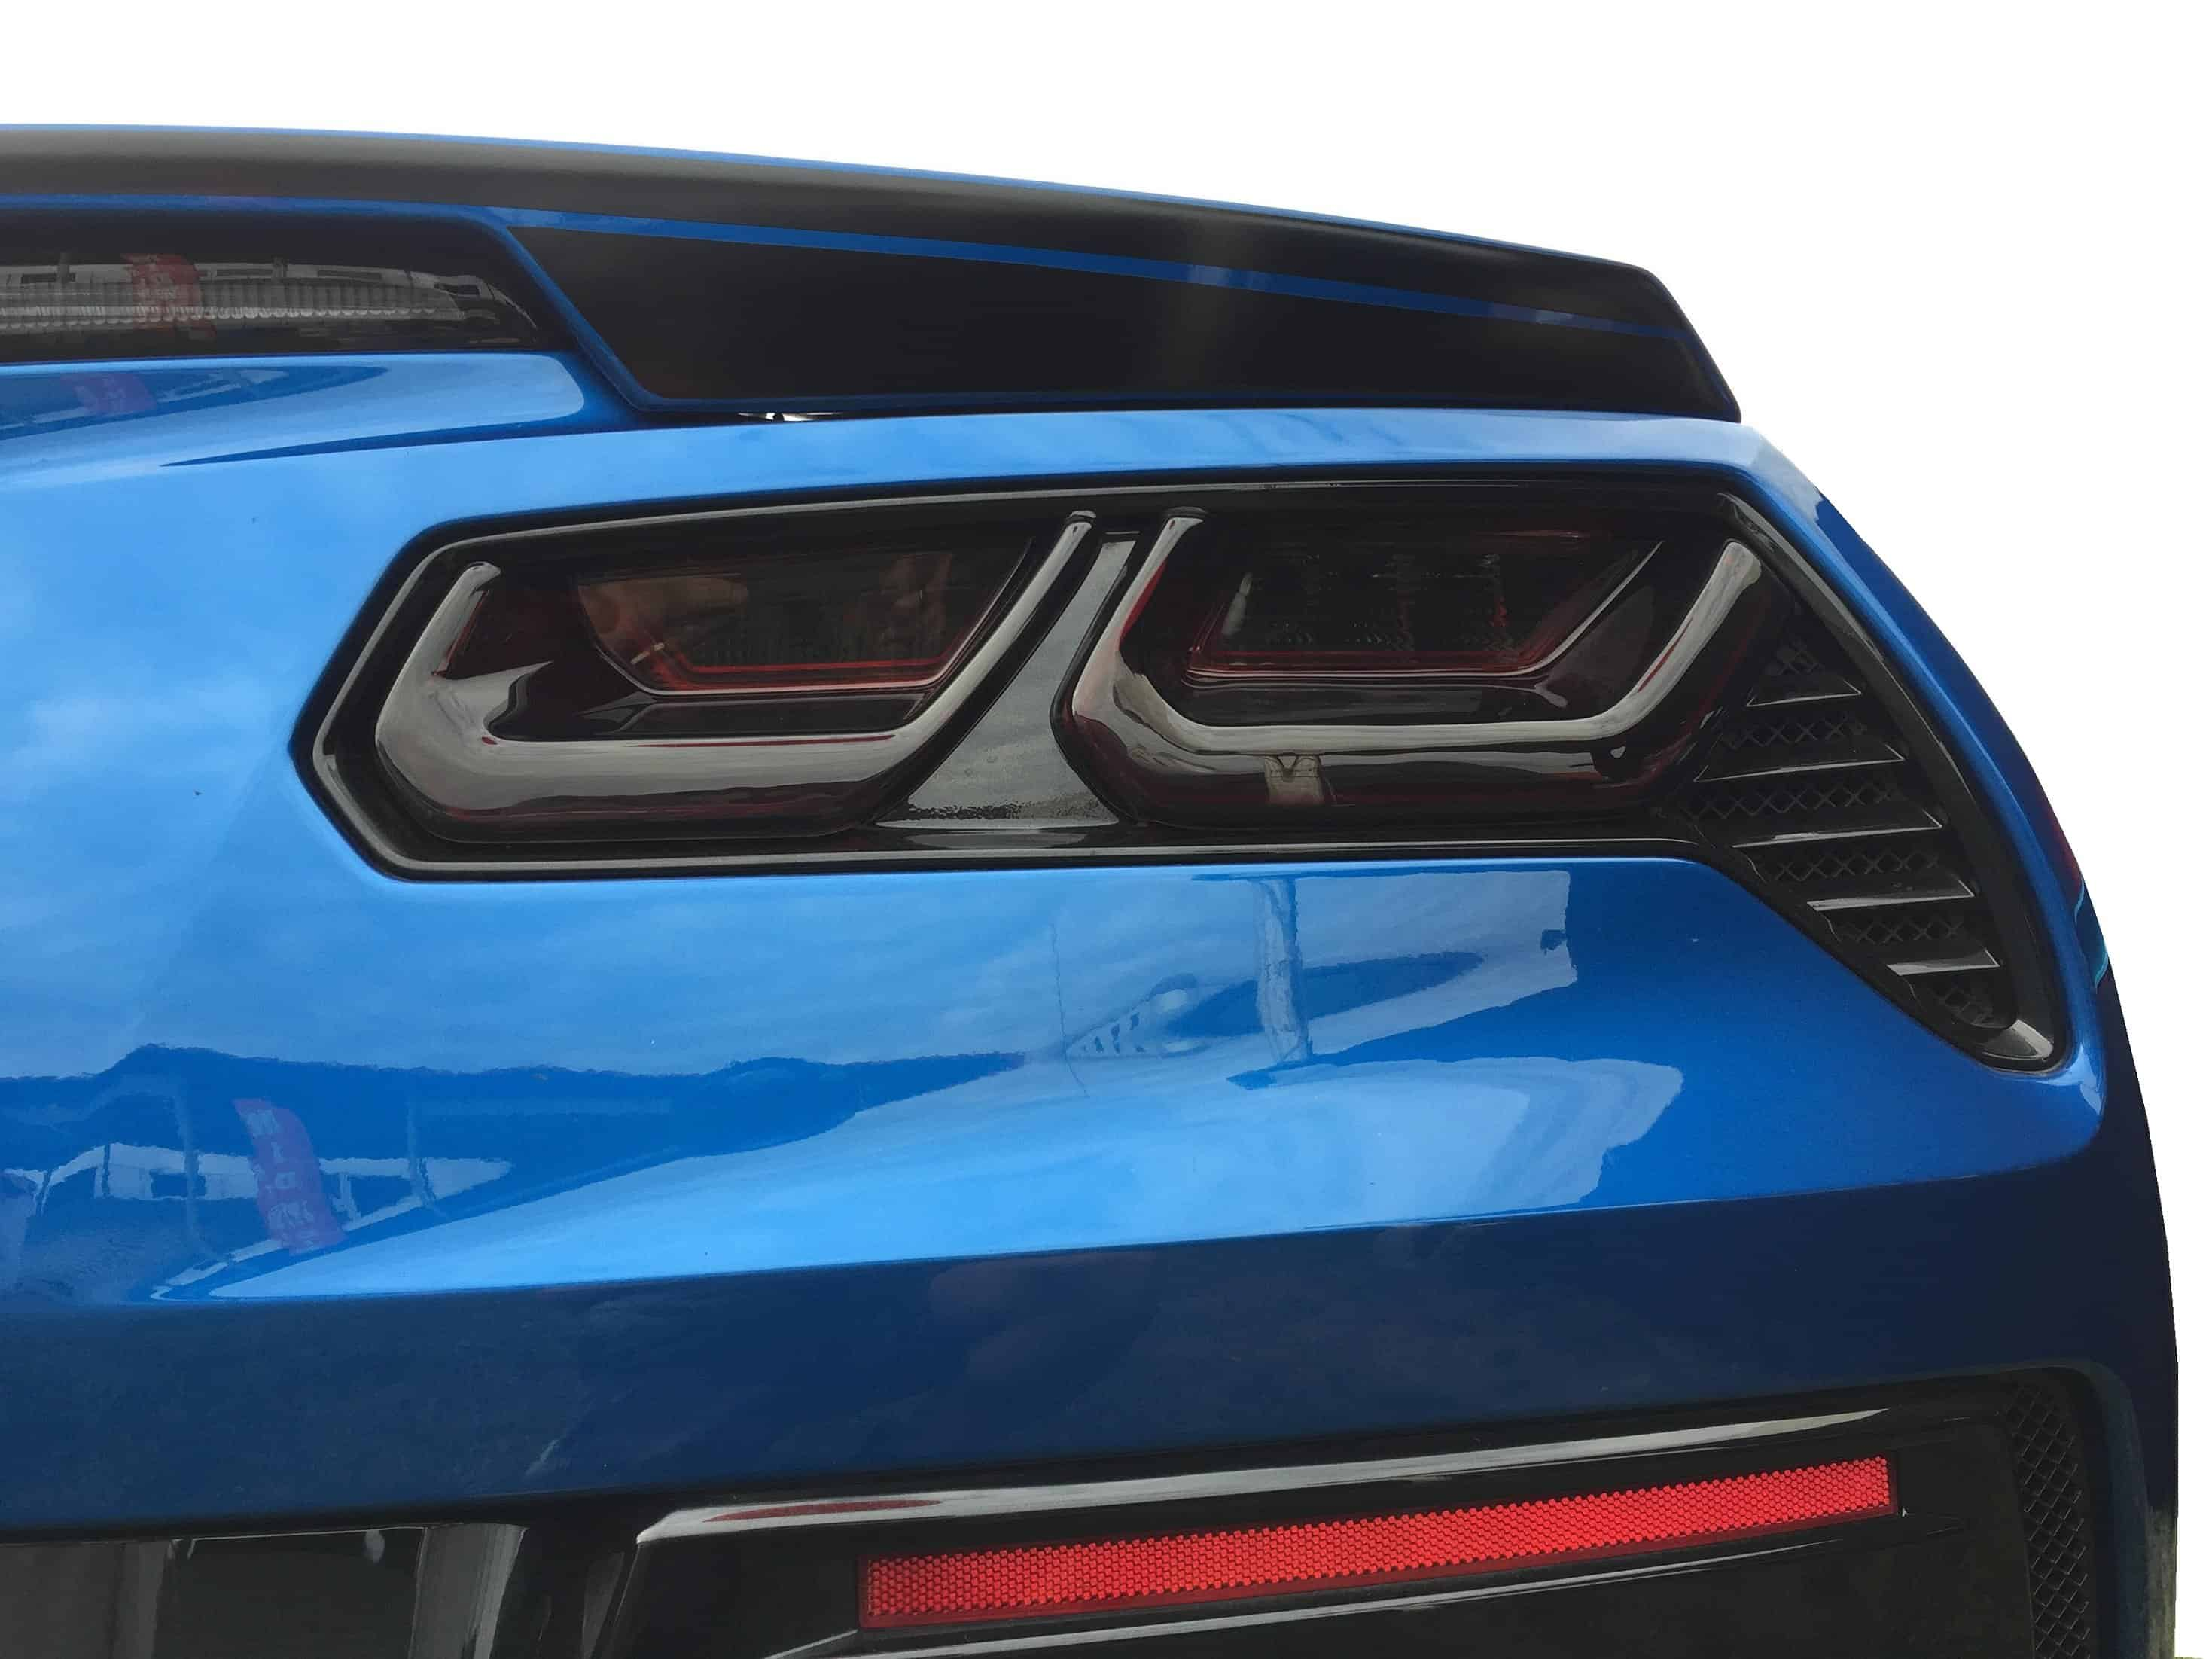 C7 Corvette Molded Acrylic Taillight Covers Smoked ...